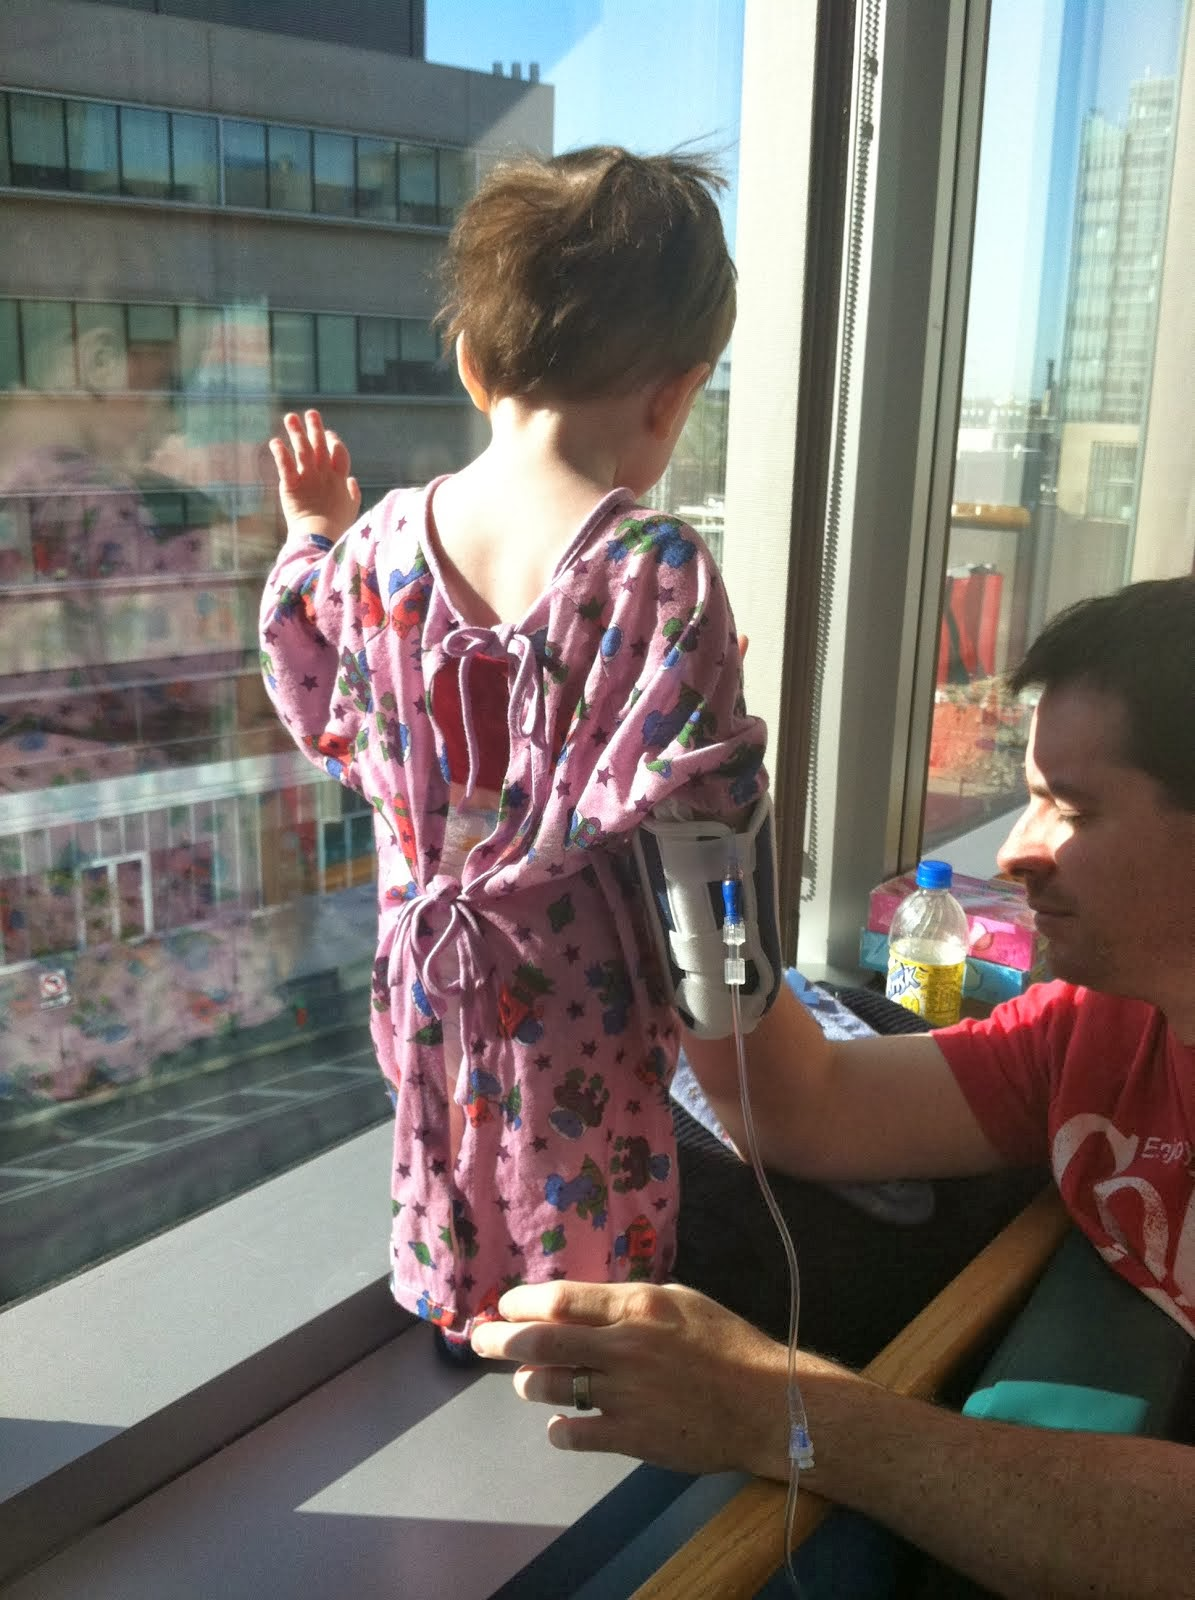 Ian at The Children's Hospital of Philadelphia